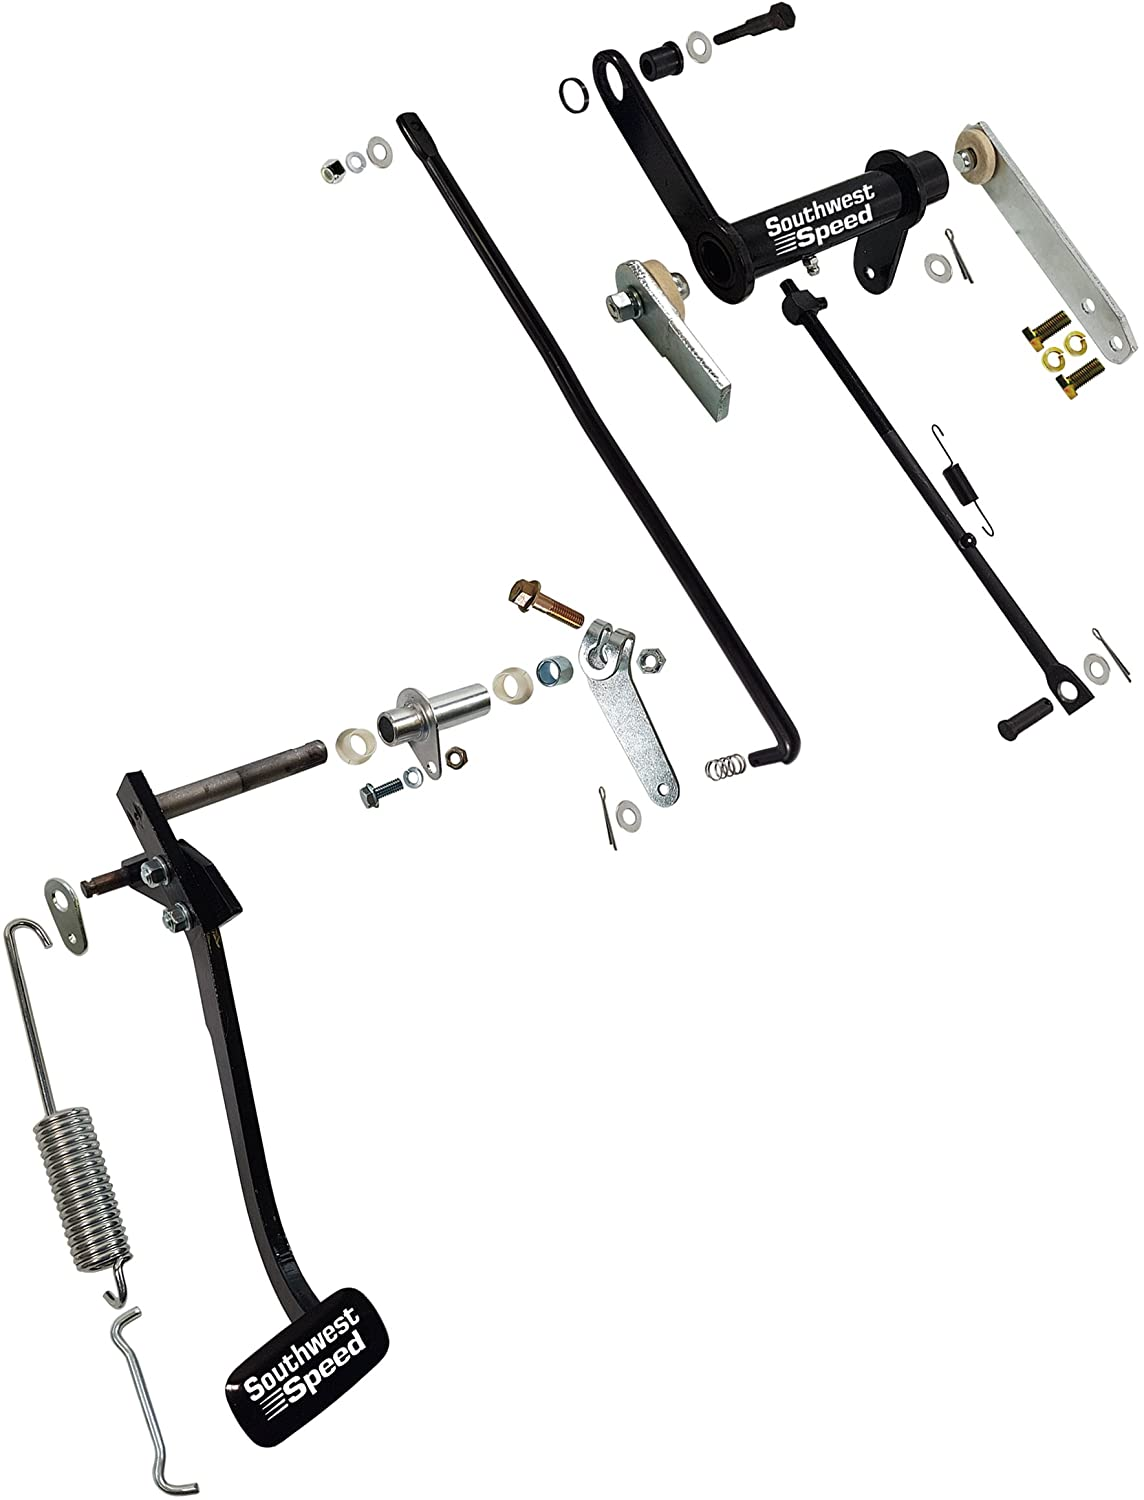 New 1957 Chevy Factory Replacement Clutch Pedal 57 Engine Mount Diagram Linkage Kit By Southwest Speed Tri 5 Bel Air Includes Z Bar Cross Shaft